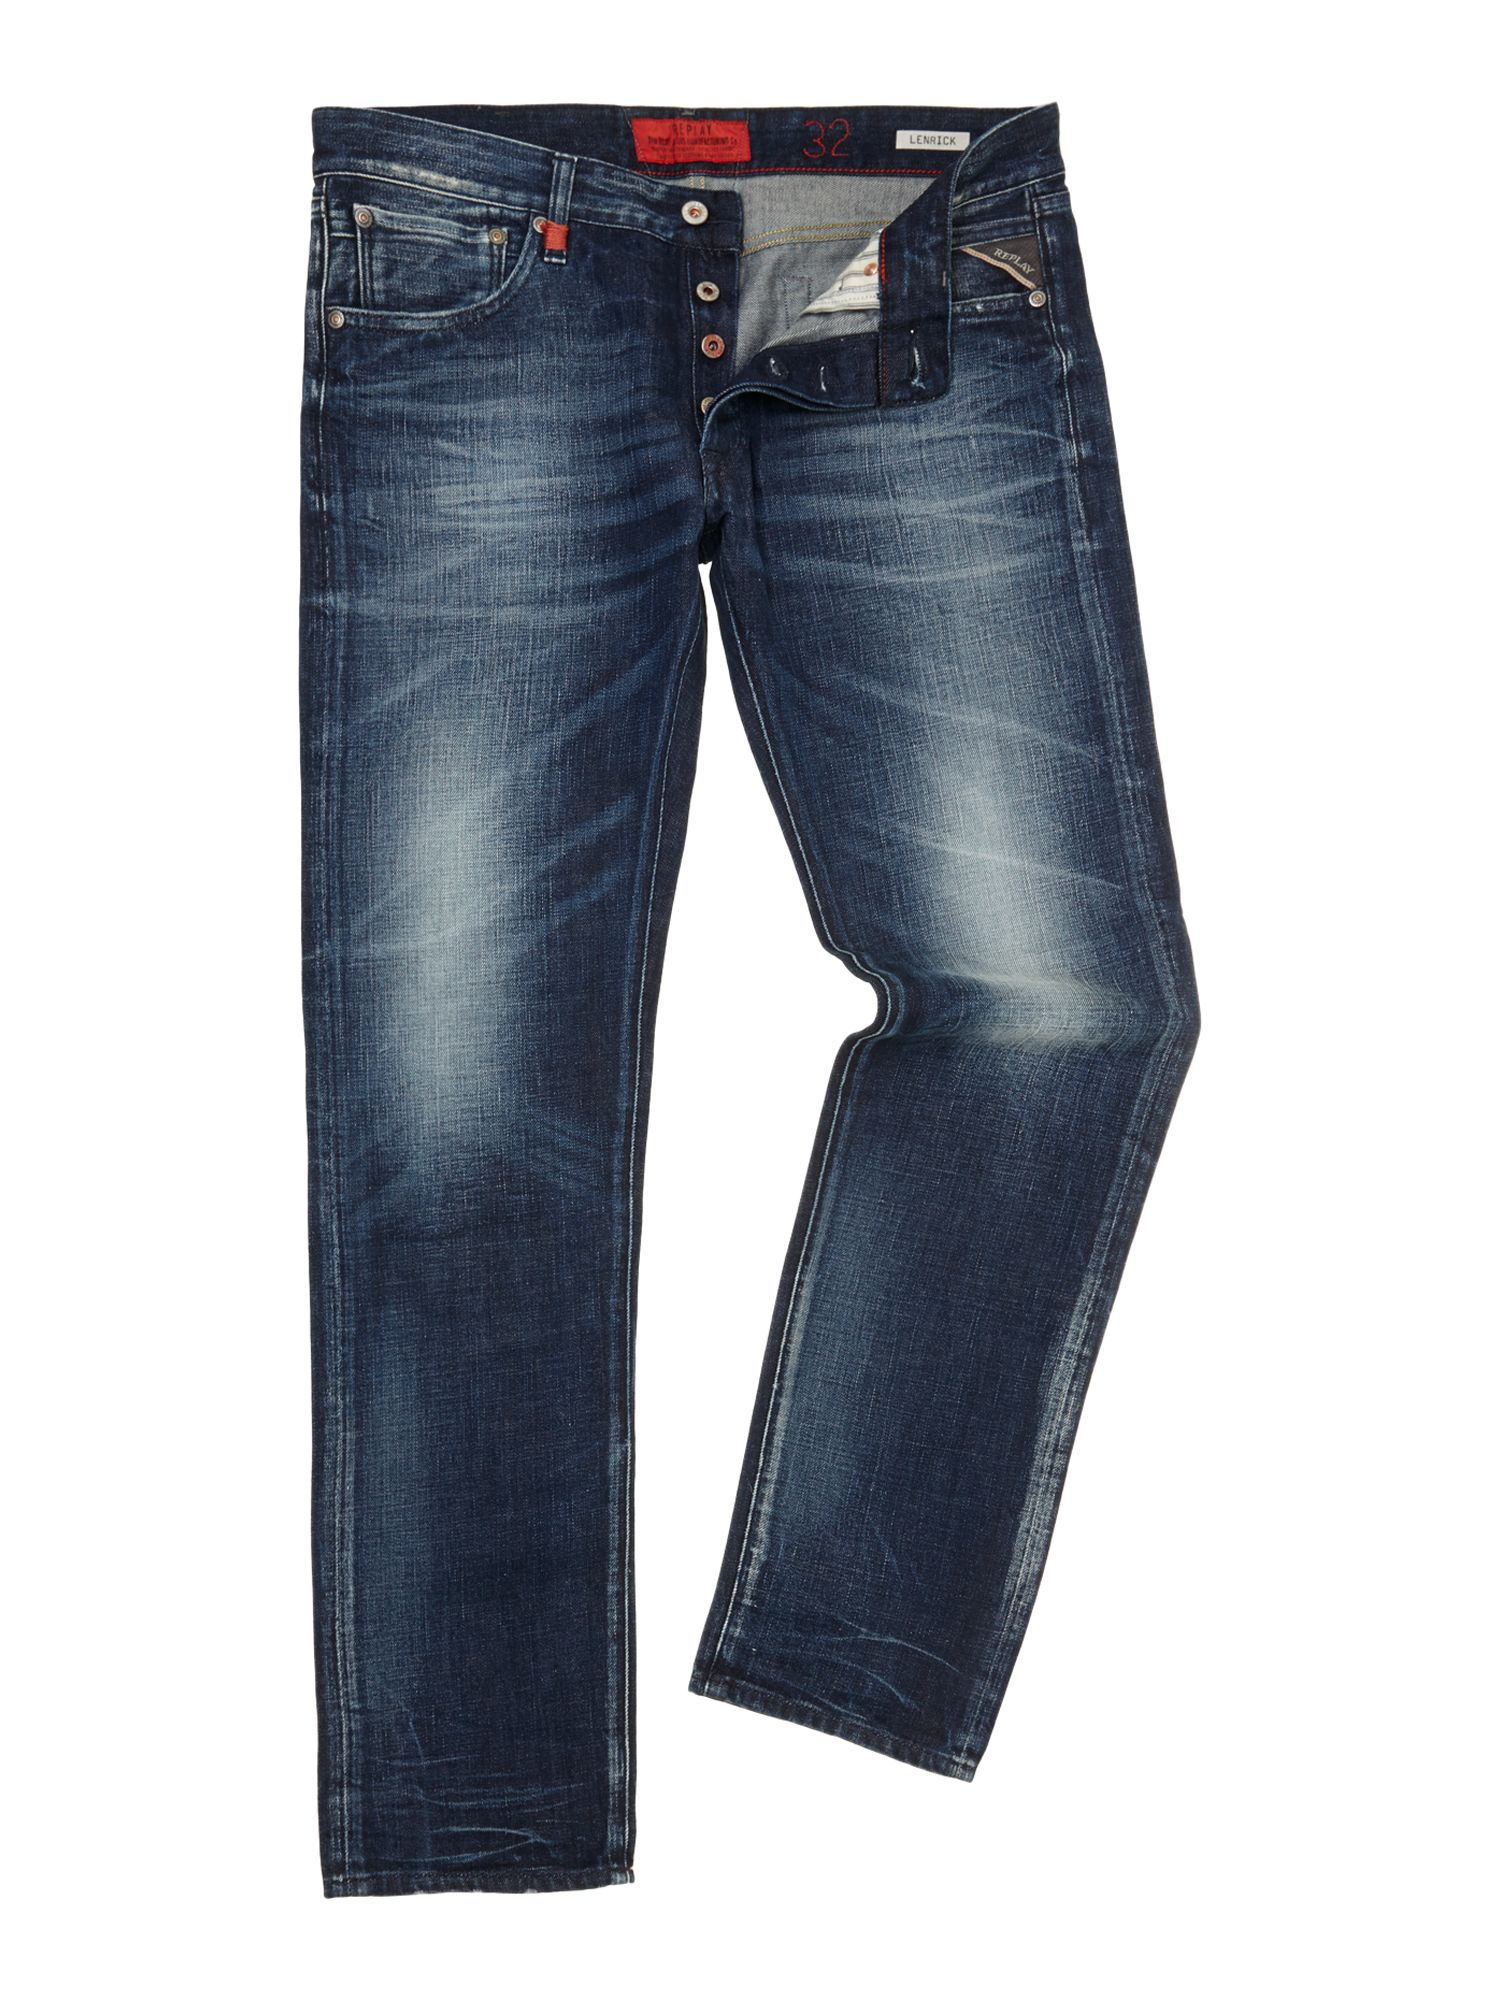 Lenrick denim jeans, regular slim fit